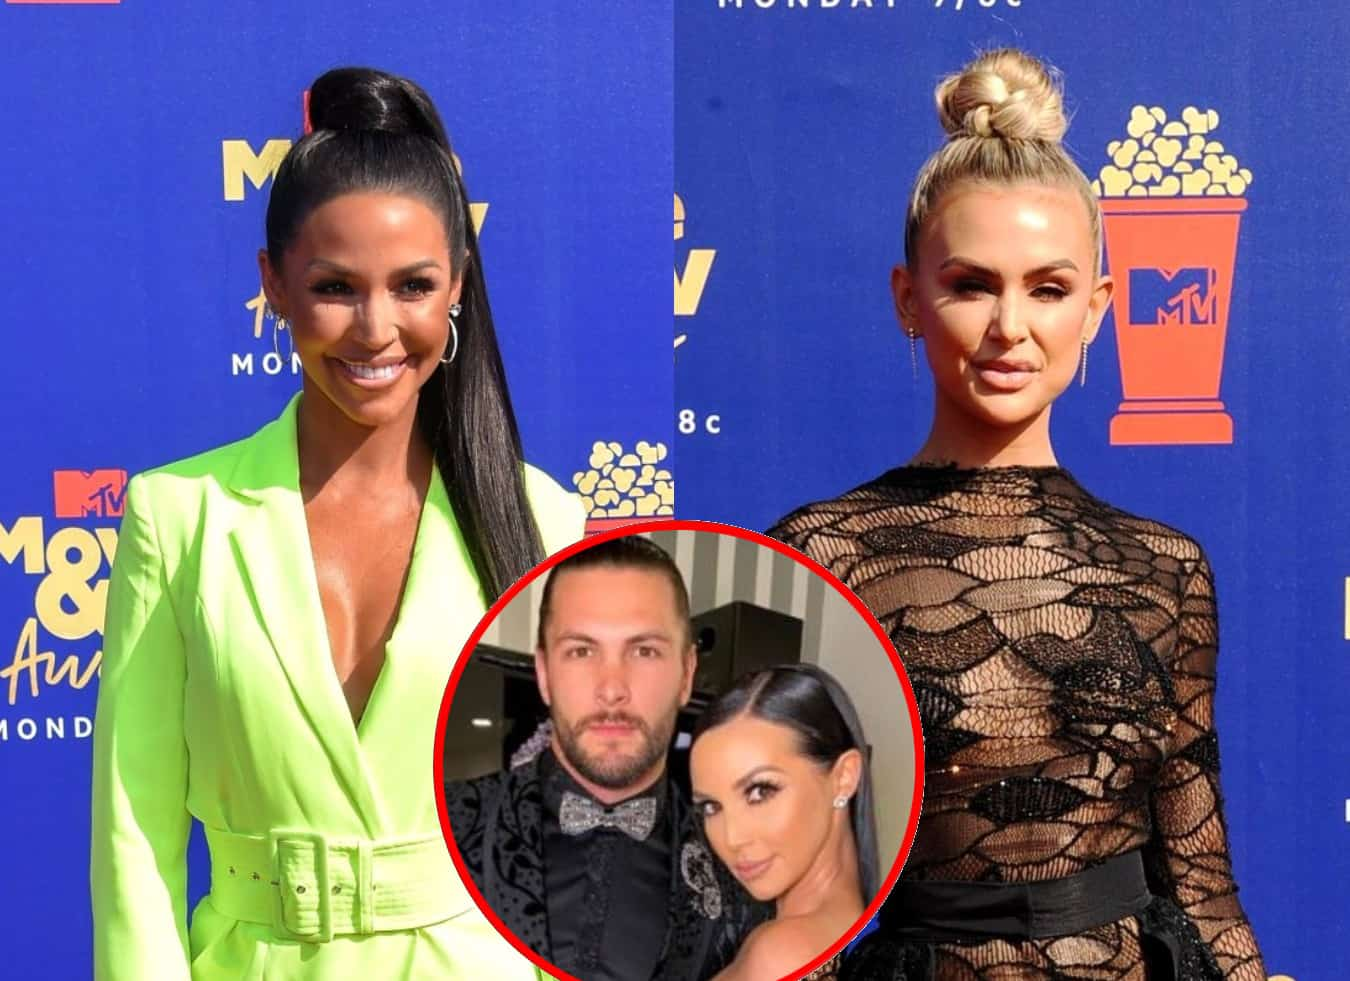 """Vanderpump Rules' Scheana Shay On Why She'll """"Never"""" Be Friends With Lala Kent Again and Claims She """"Lied,"""" Defends Boyfriend's Brock's Reaction to Her Miscarriage"""